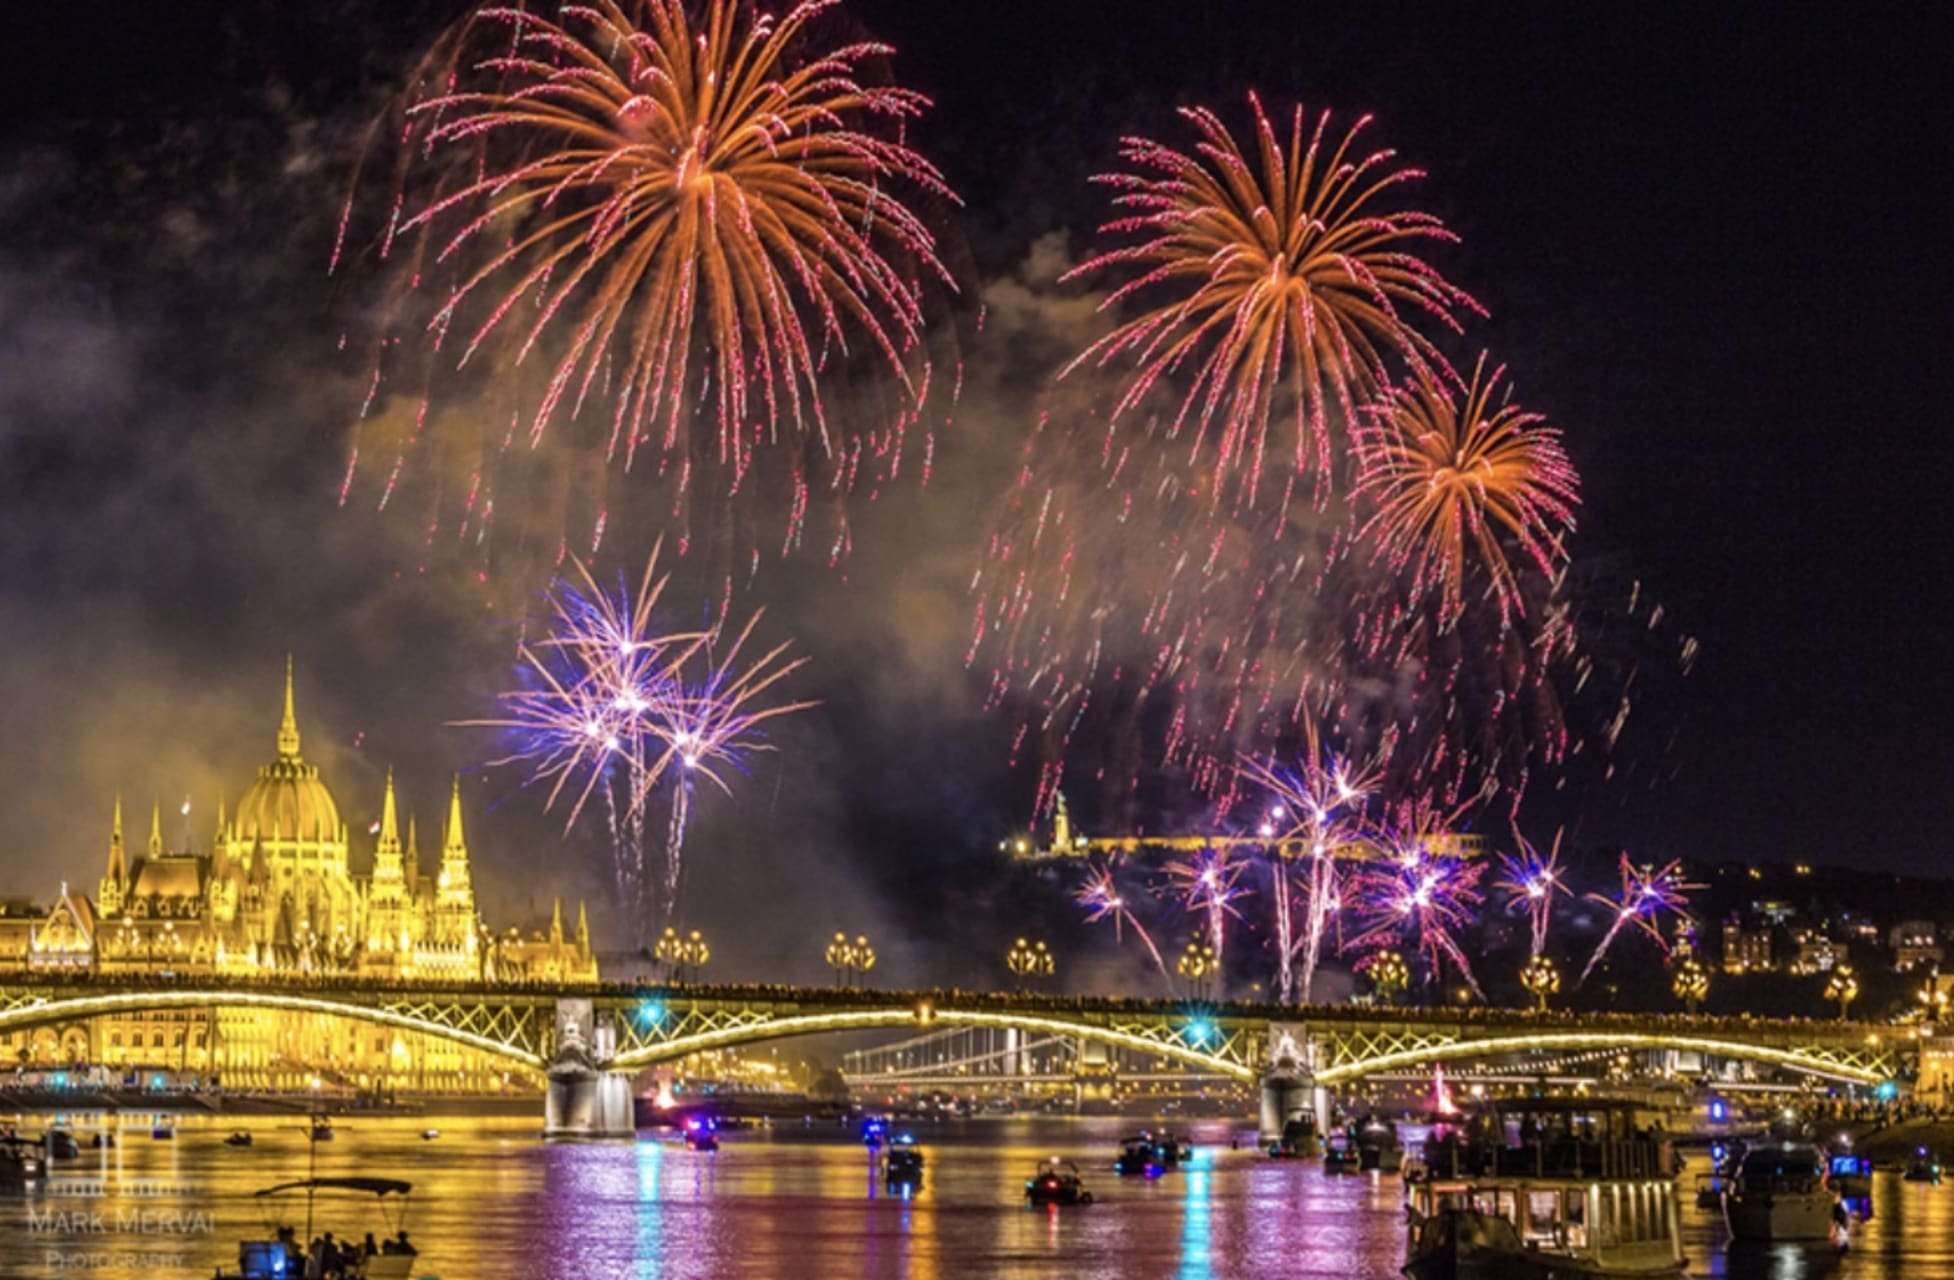 Budapest - Budapest Fireworks and Boat Tour on August 20th, the Biggest National Day of Hungary